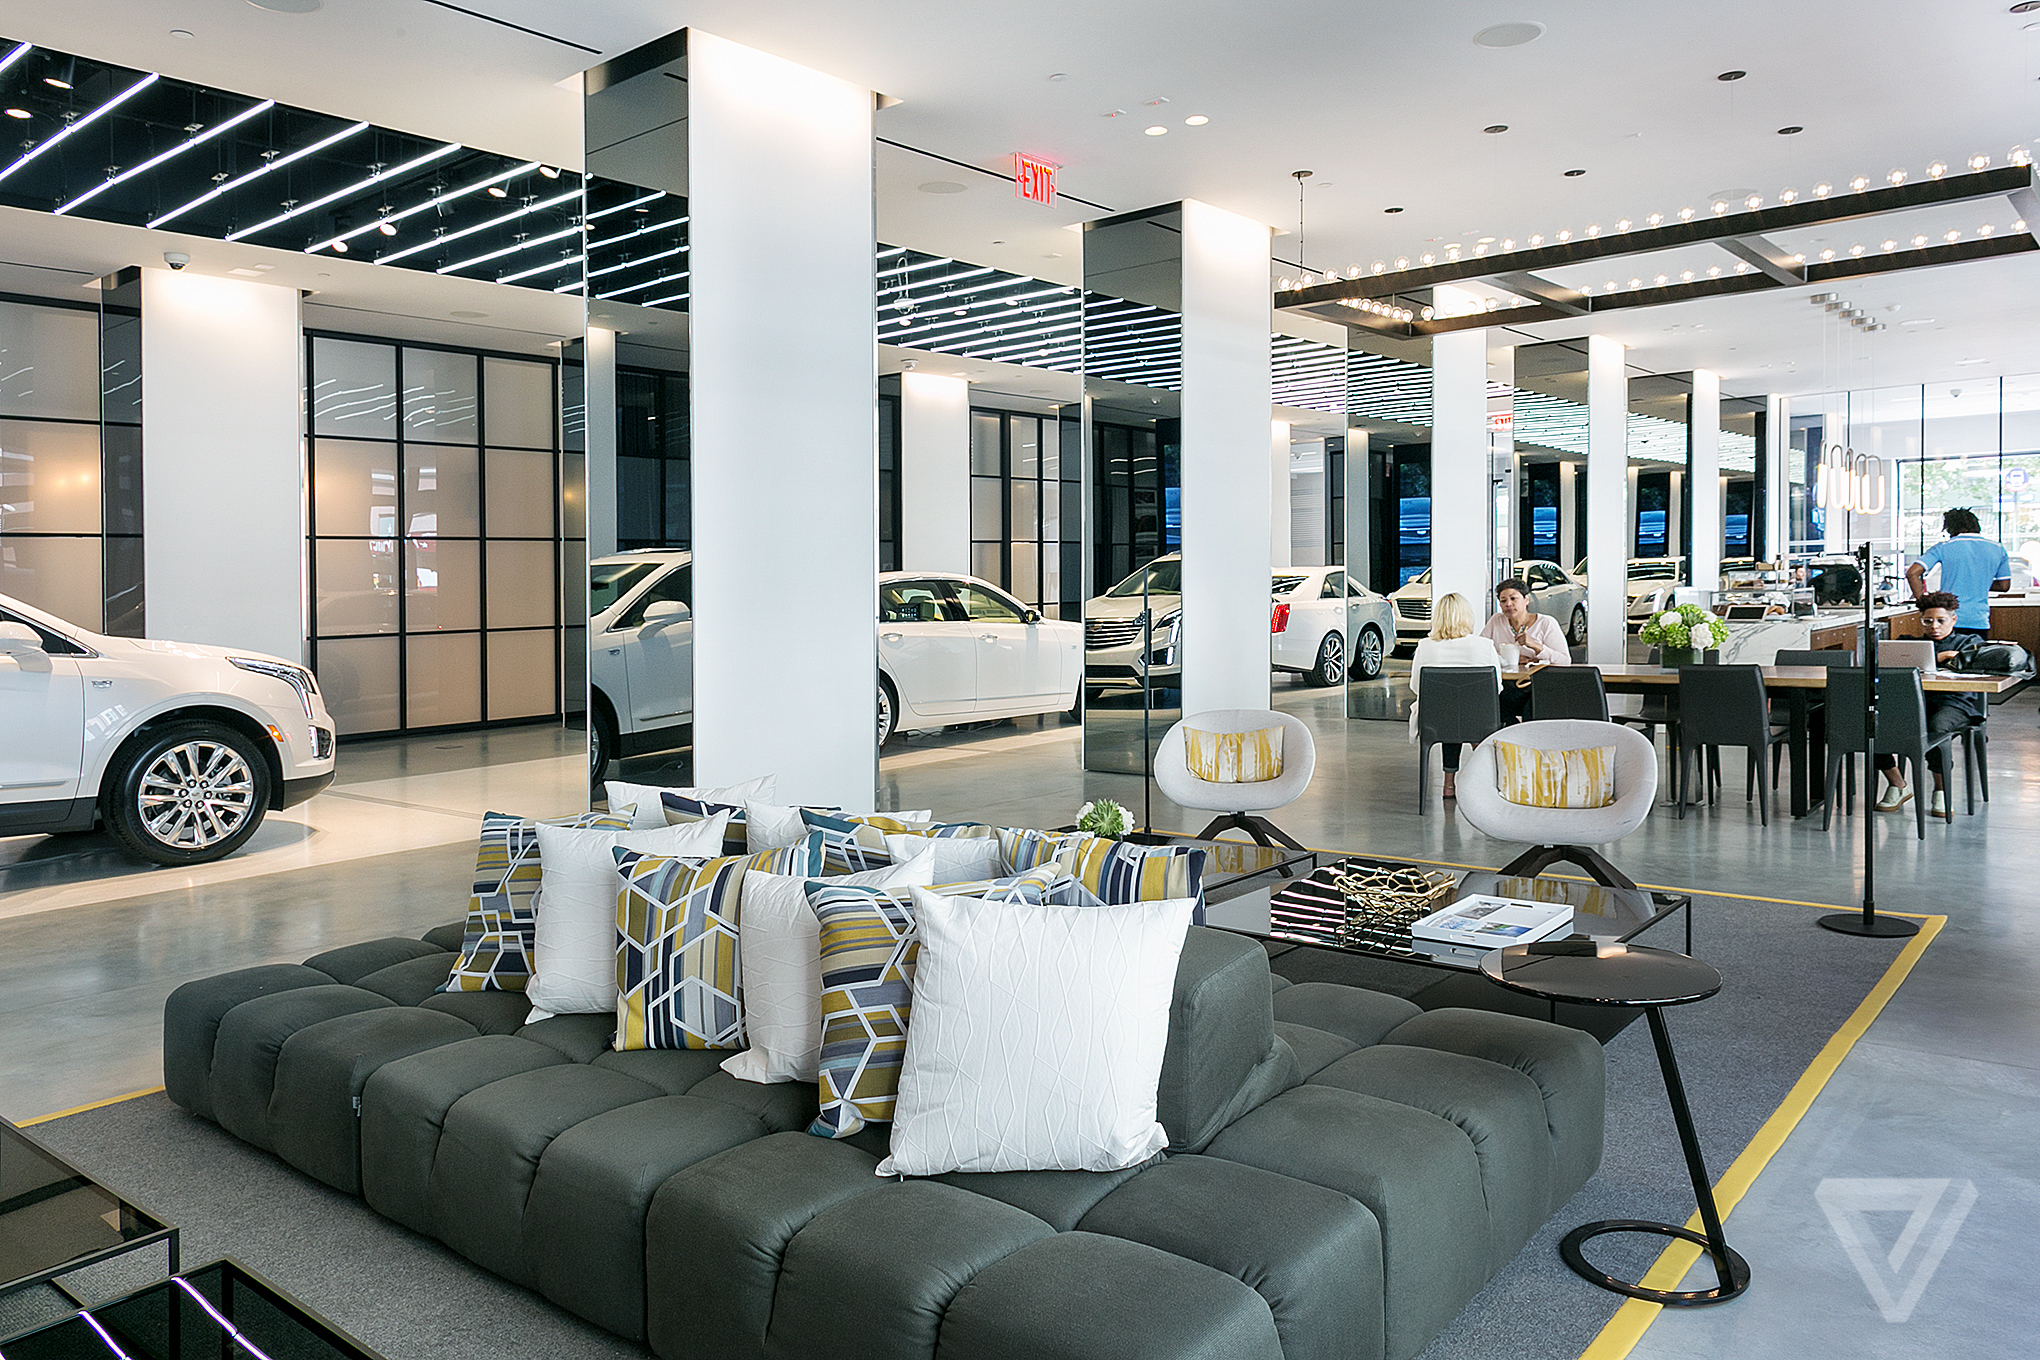 Can Cadillac Reinvent Itself The Verge - Cadillac dealers in new york